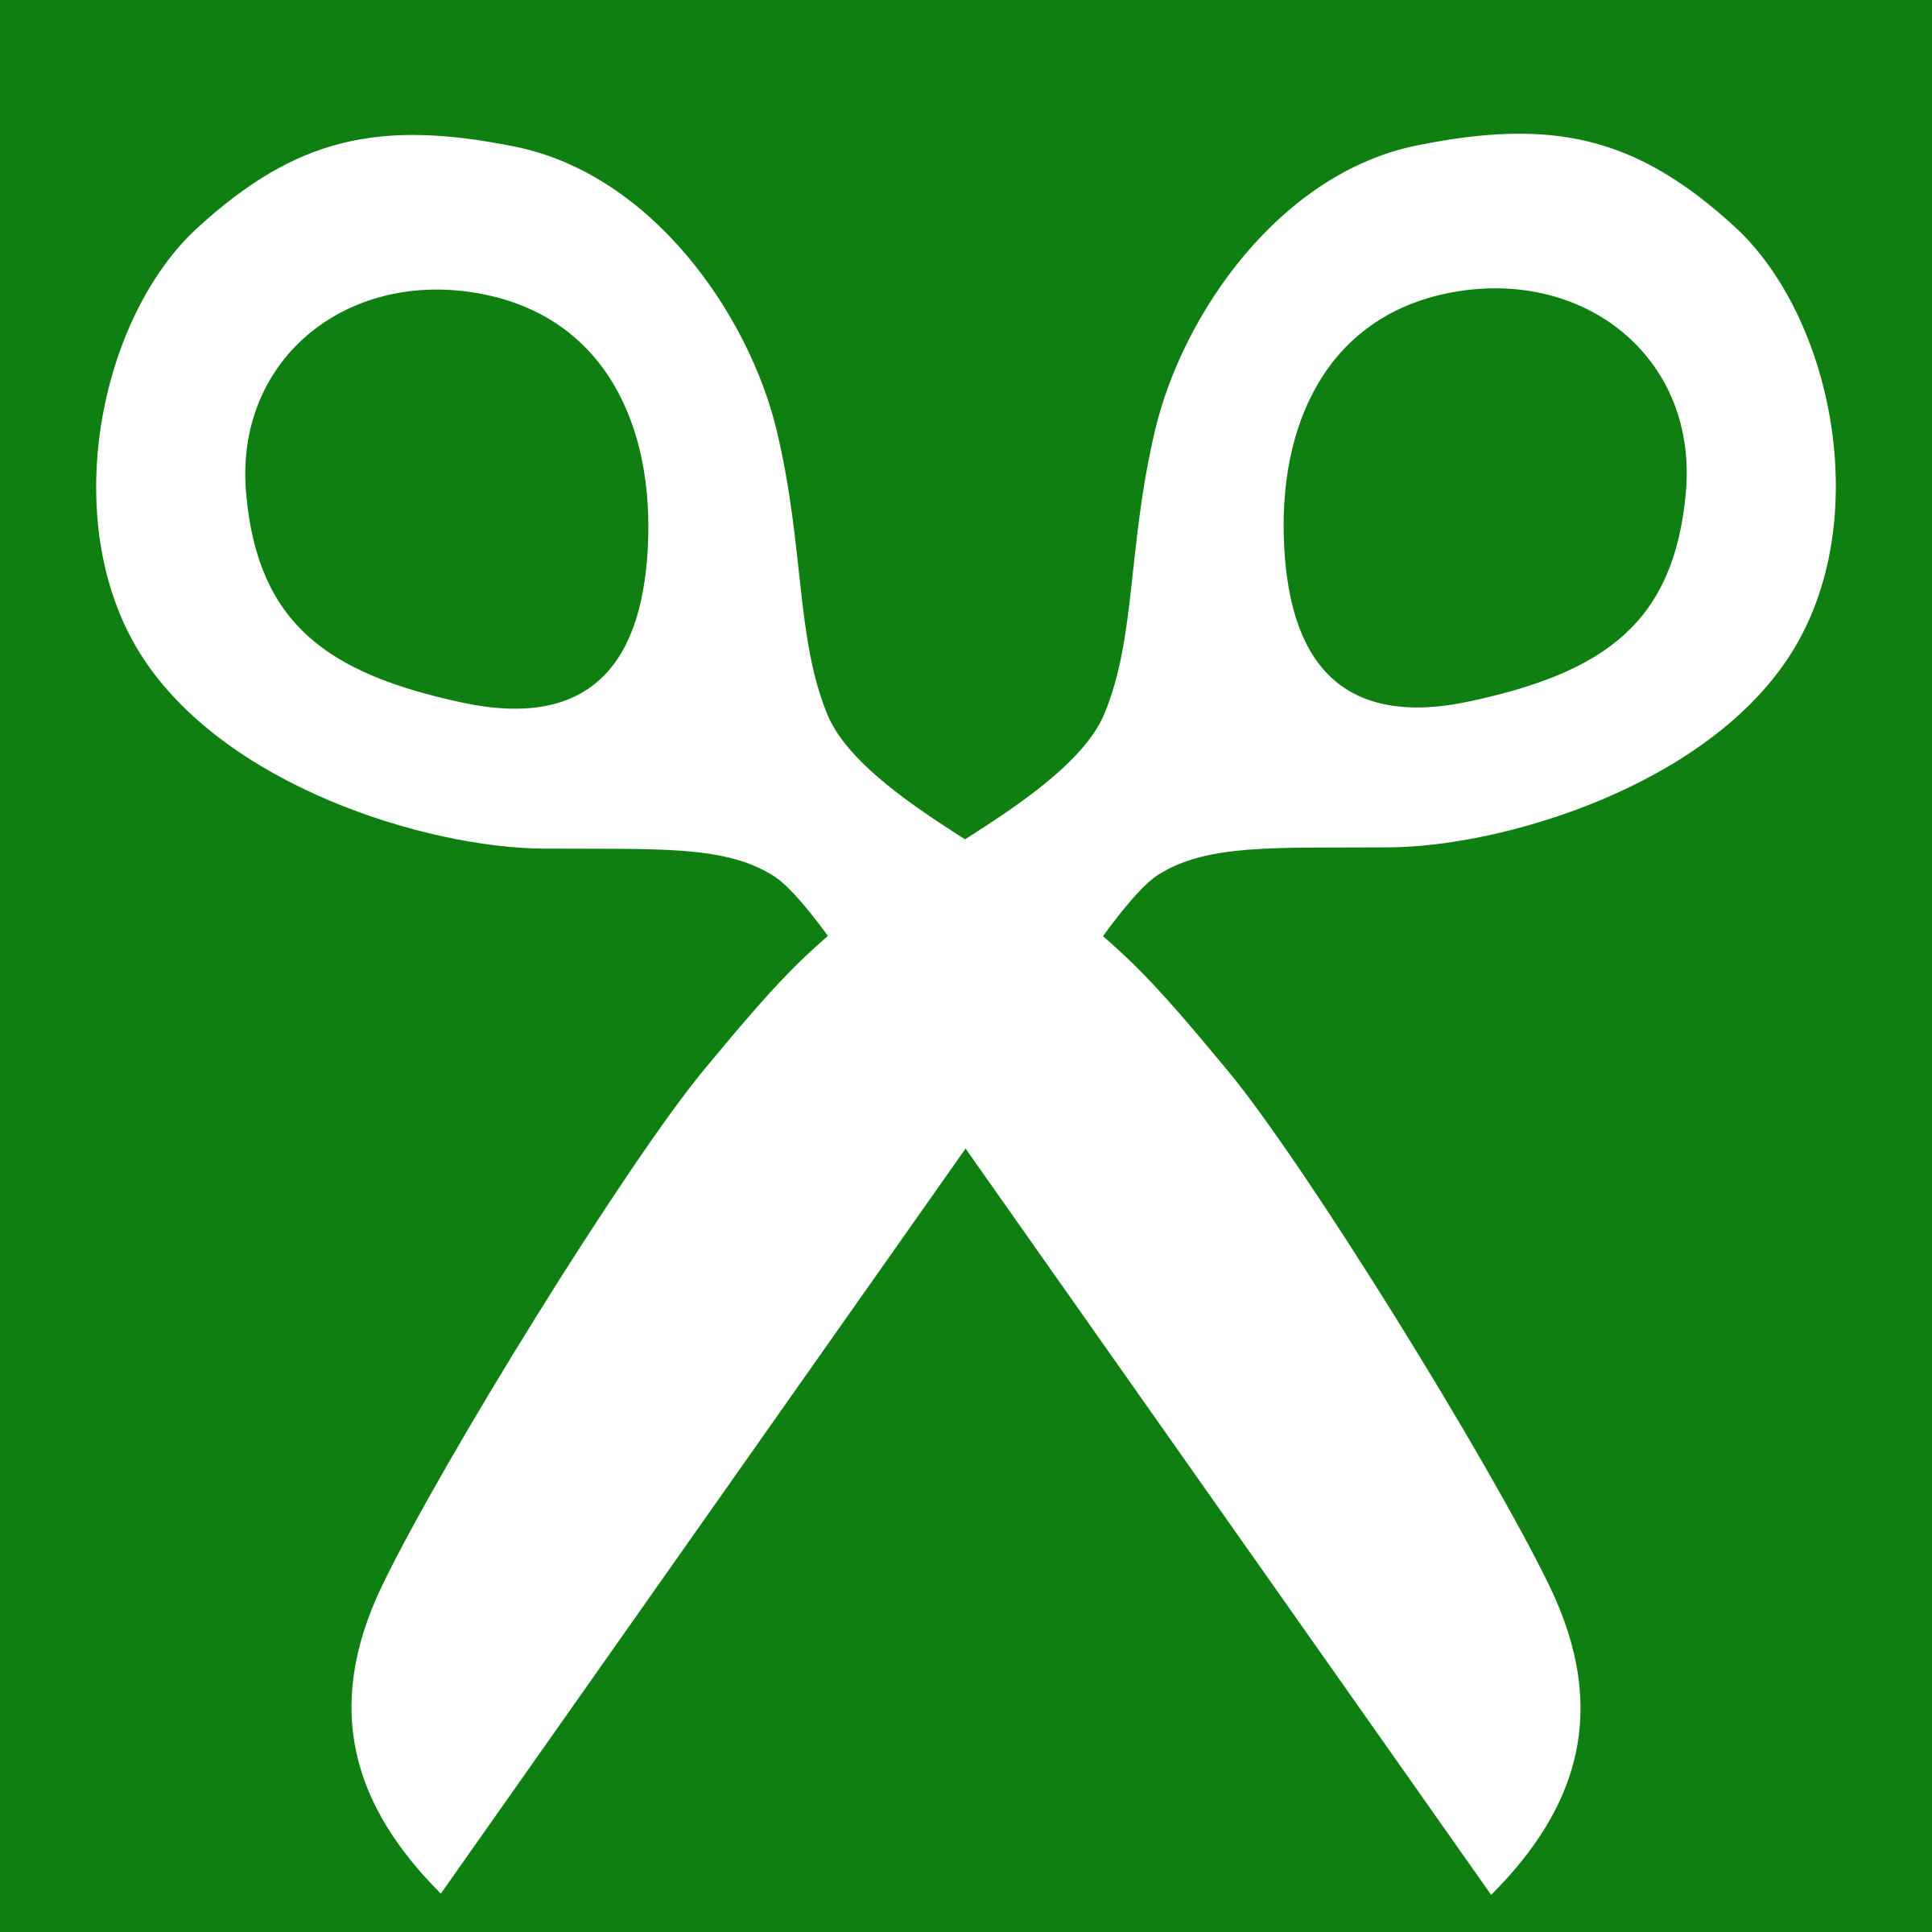 NASA flight suit development images 223-252 14 by hypermodern